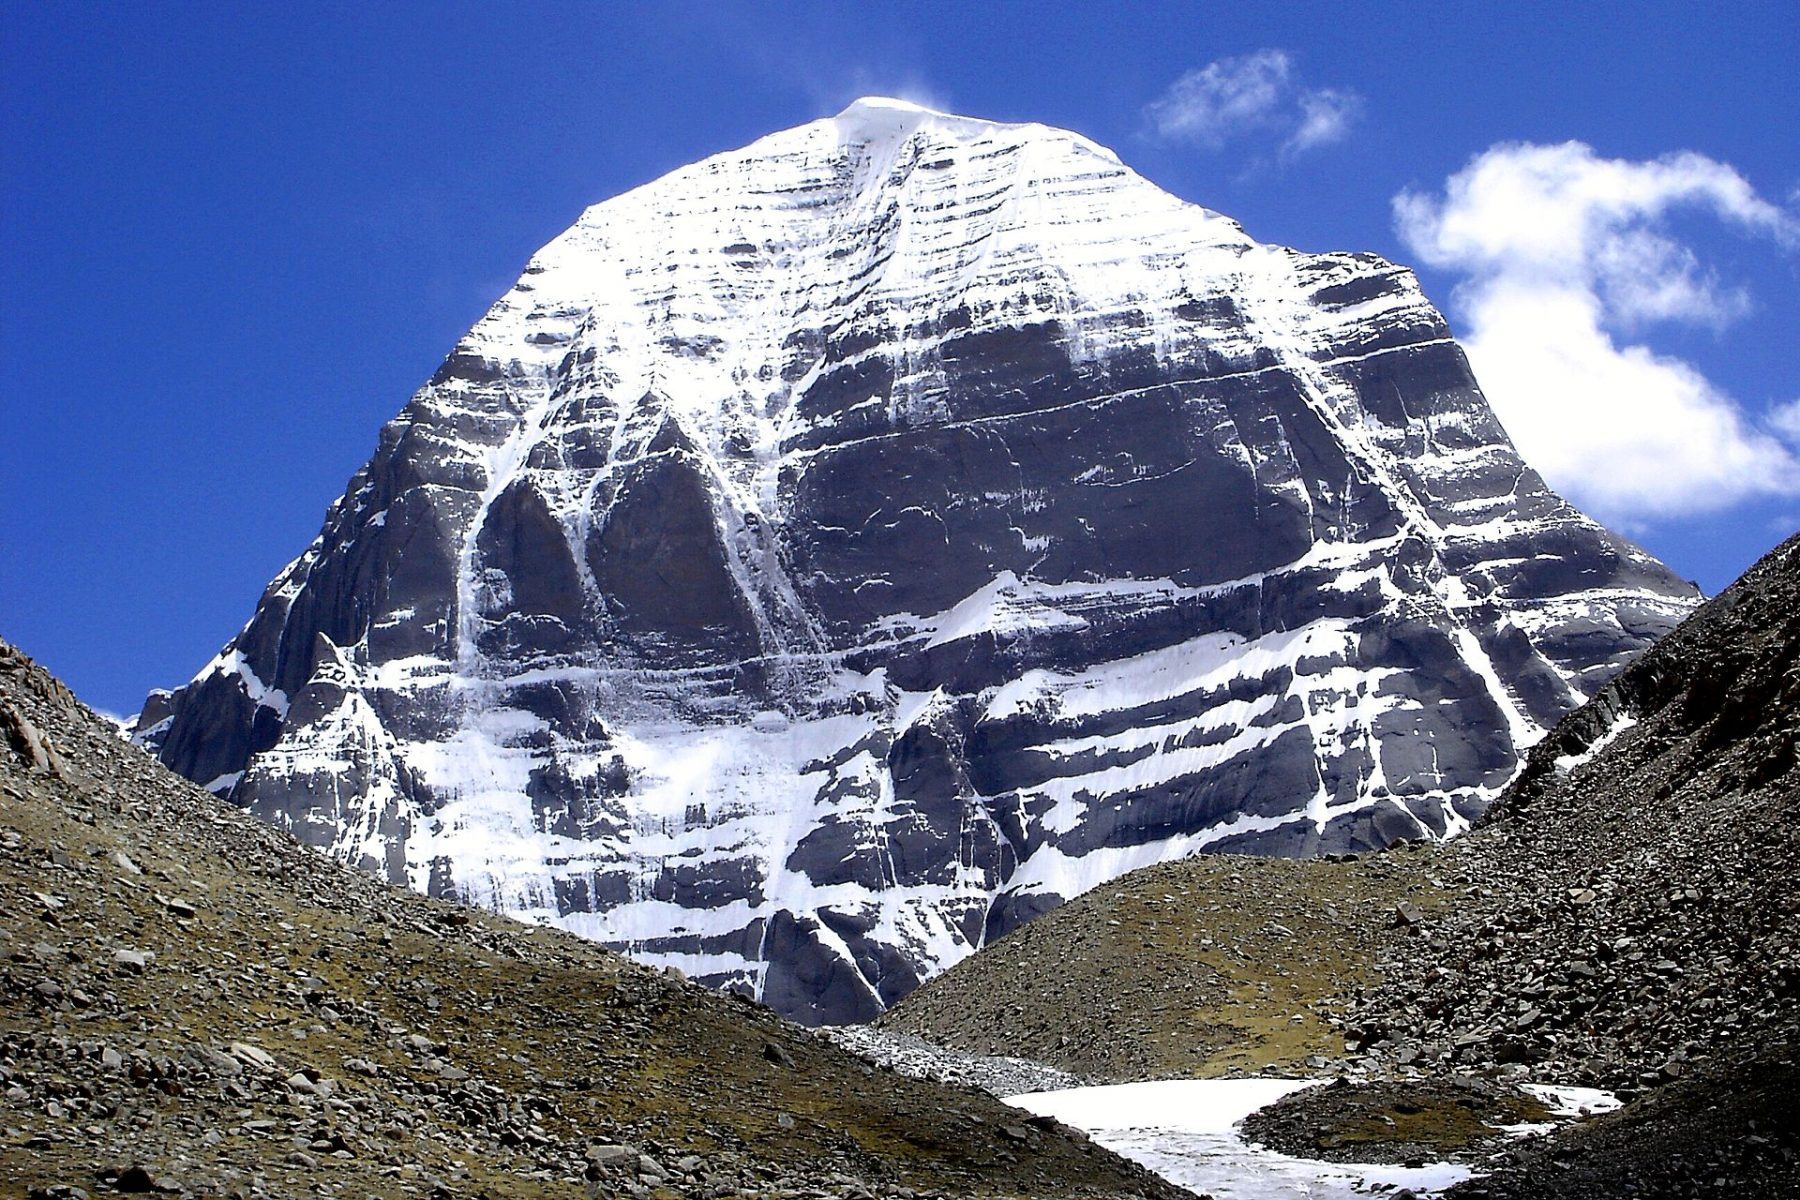 Northern side of Mt Kailash (Tibet Autonomous Region, People's Republic of China